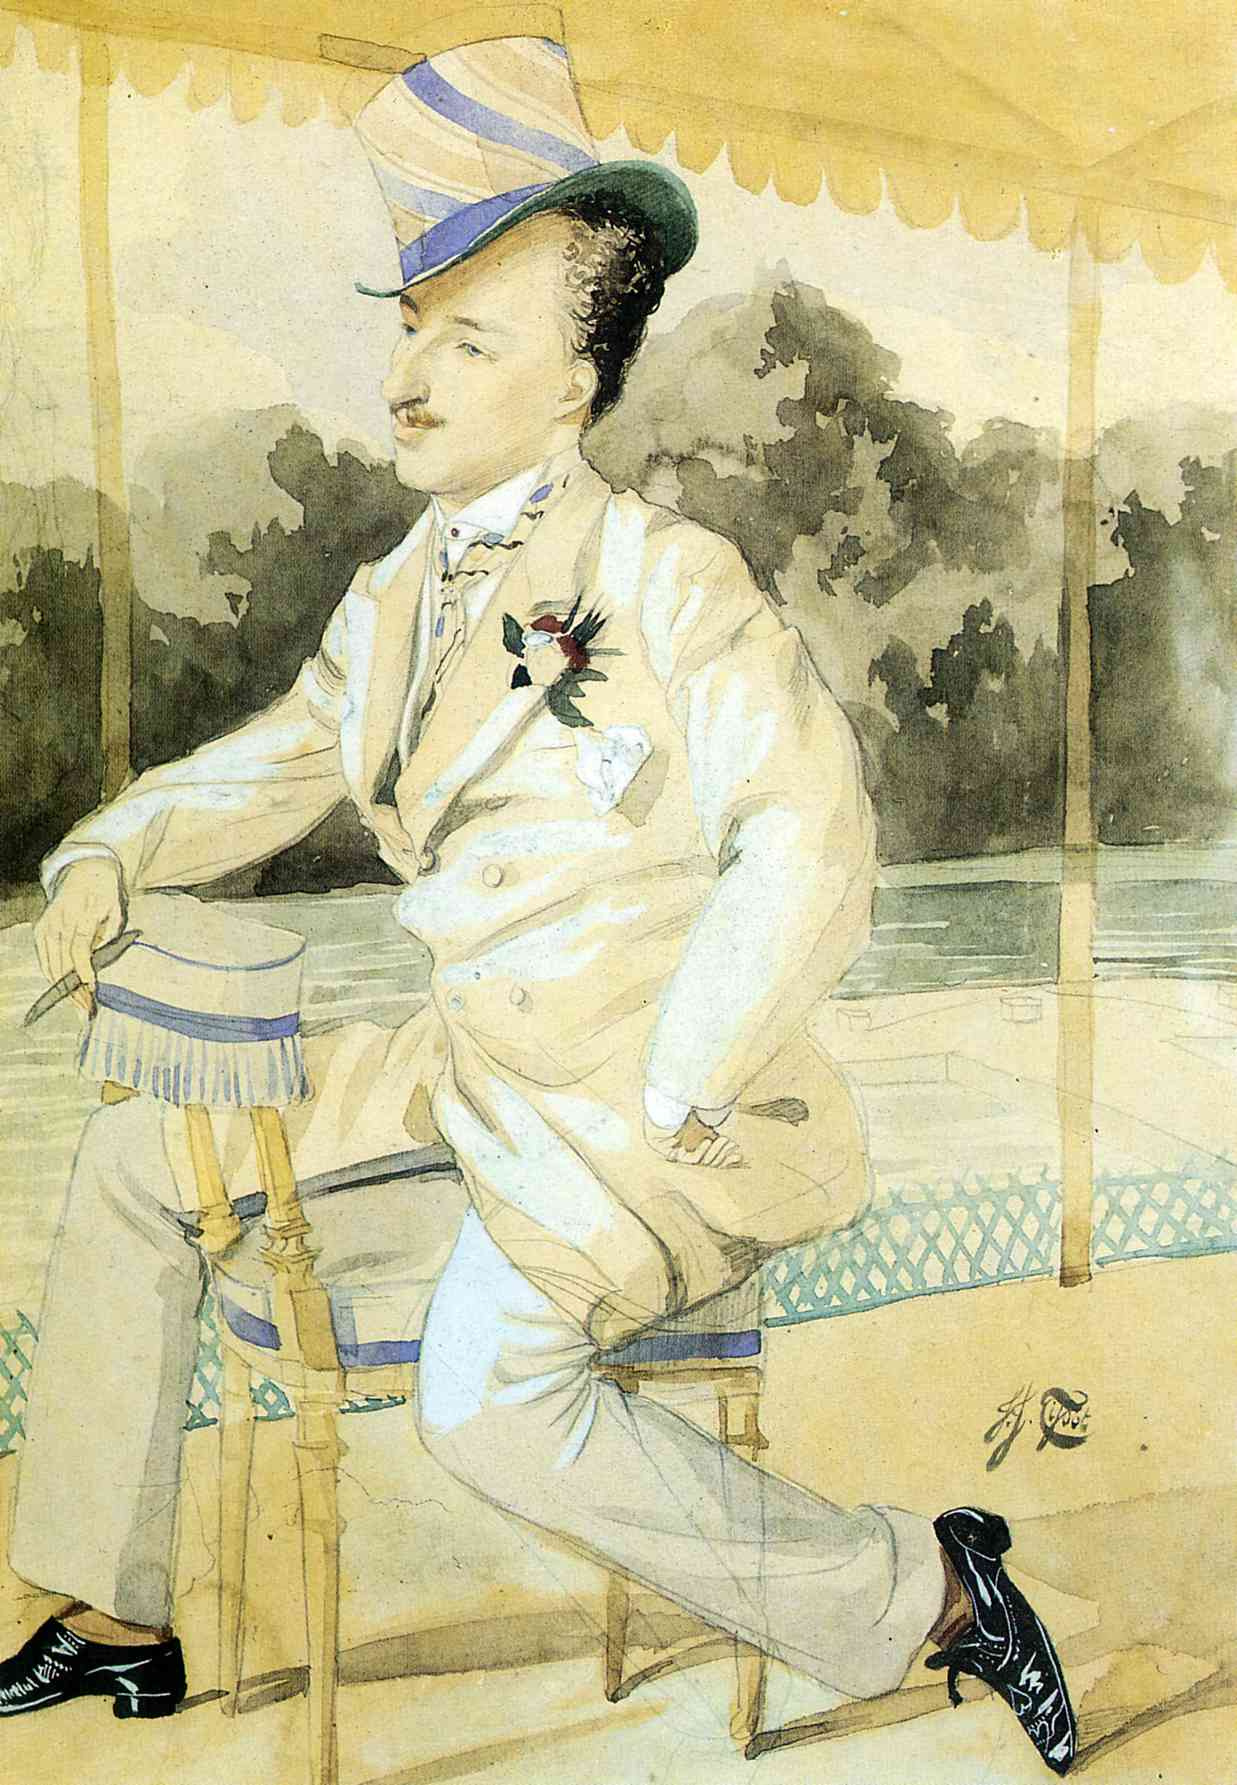 James Tissot. The gentleman in the white